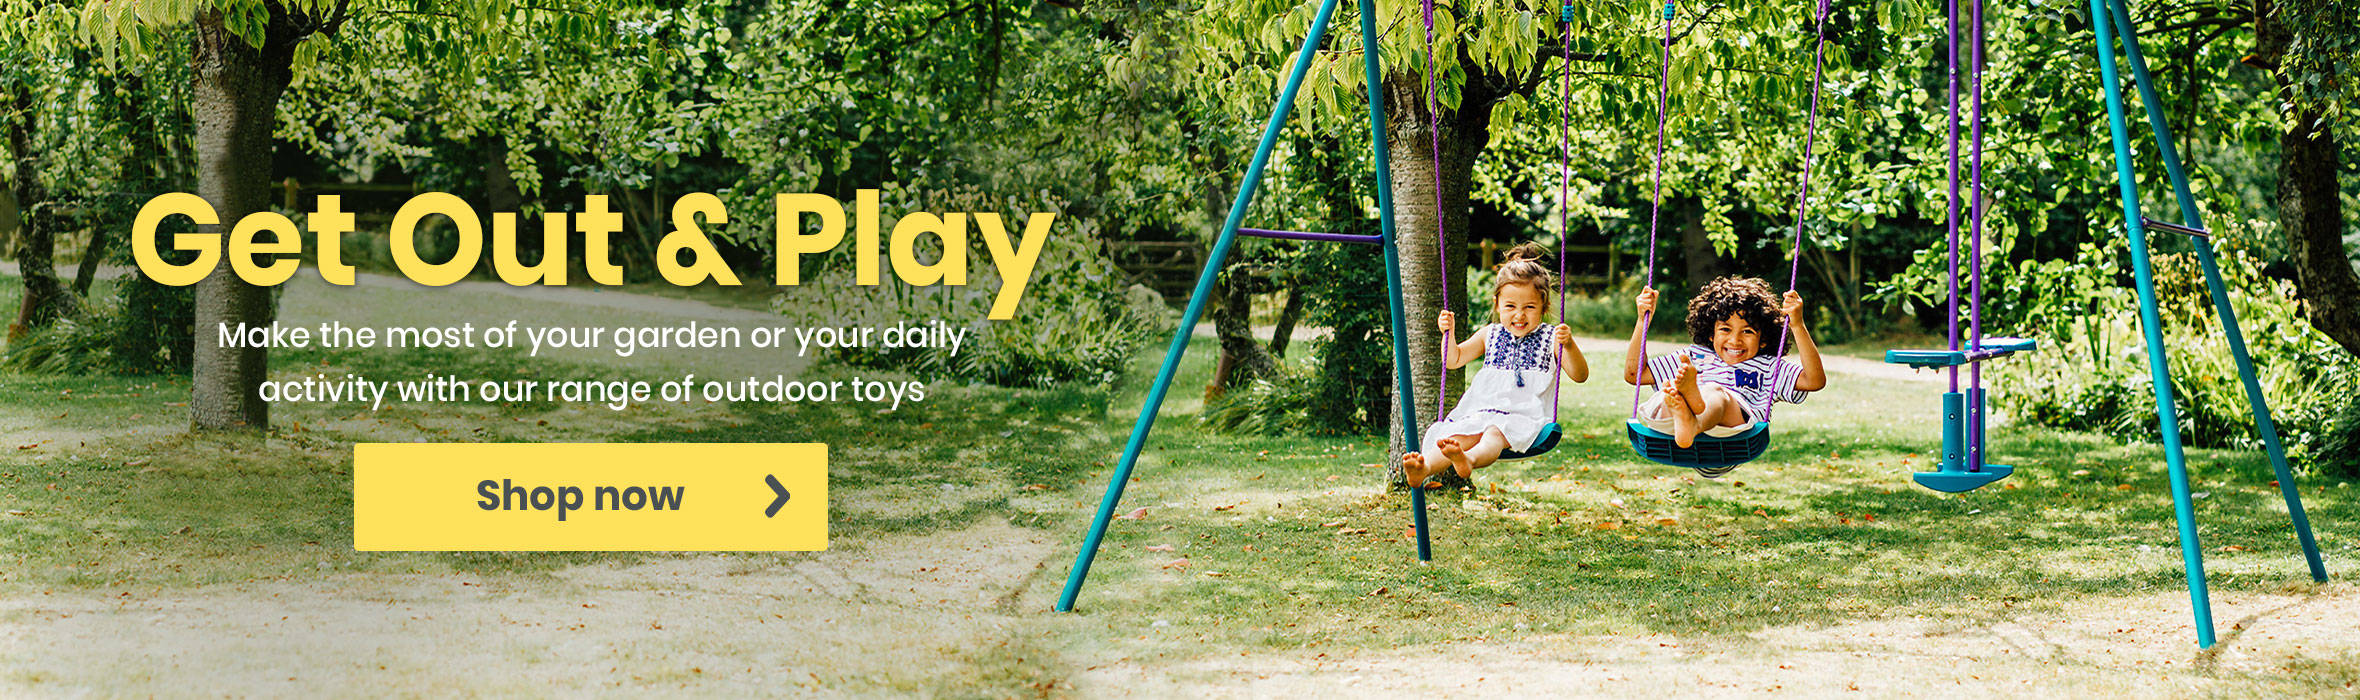 Get Out & Play and Save up to 50%